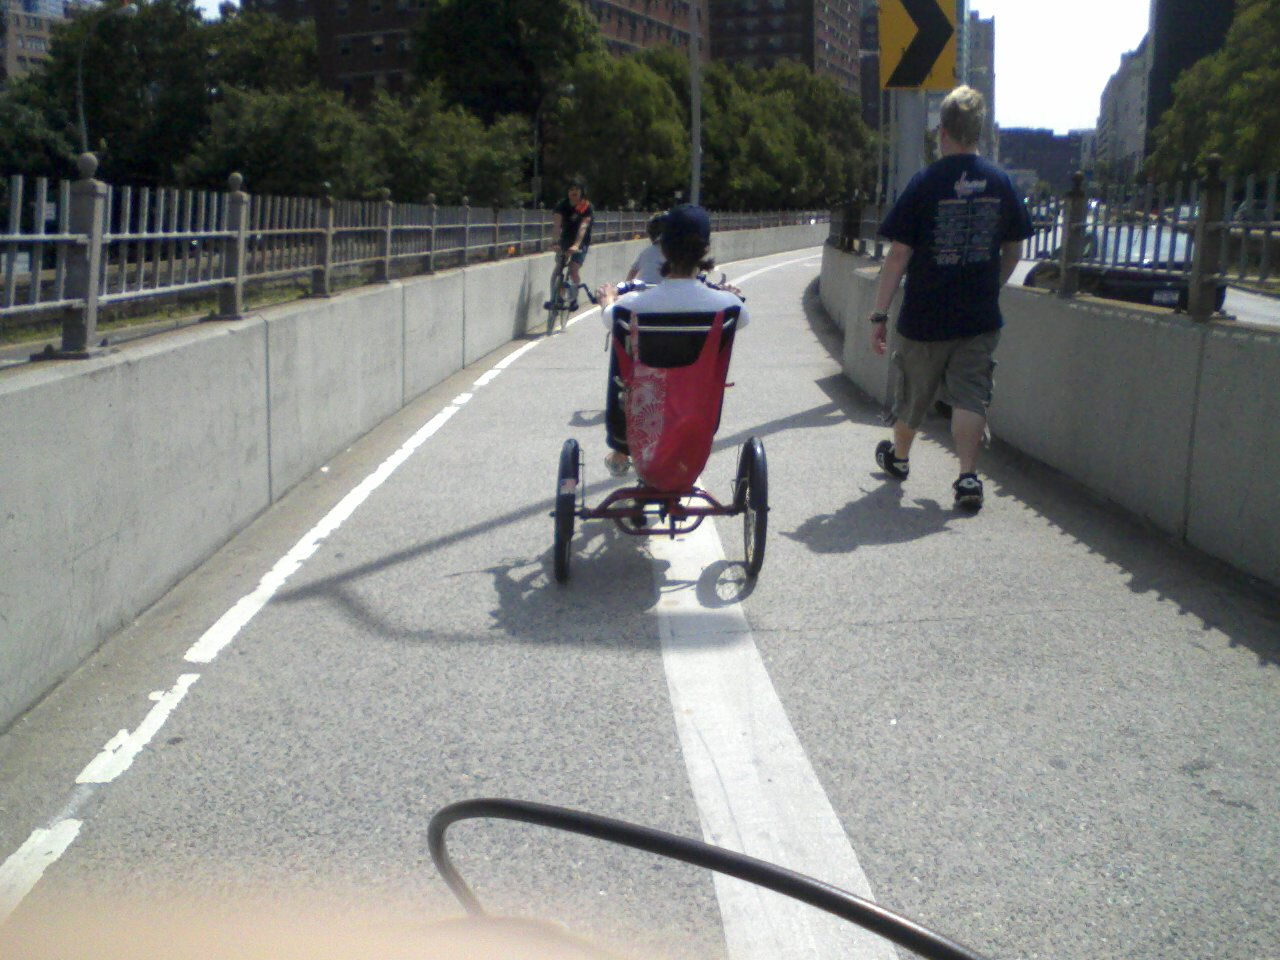 wheelchair hire york cleveland chair company urban mobility project battery park city ny recumbent